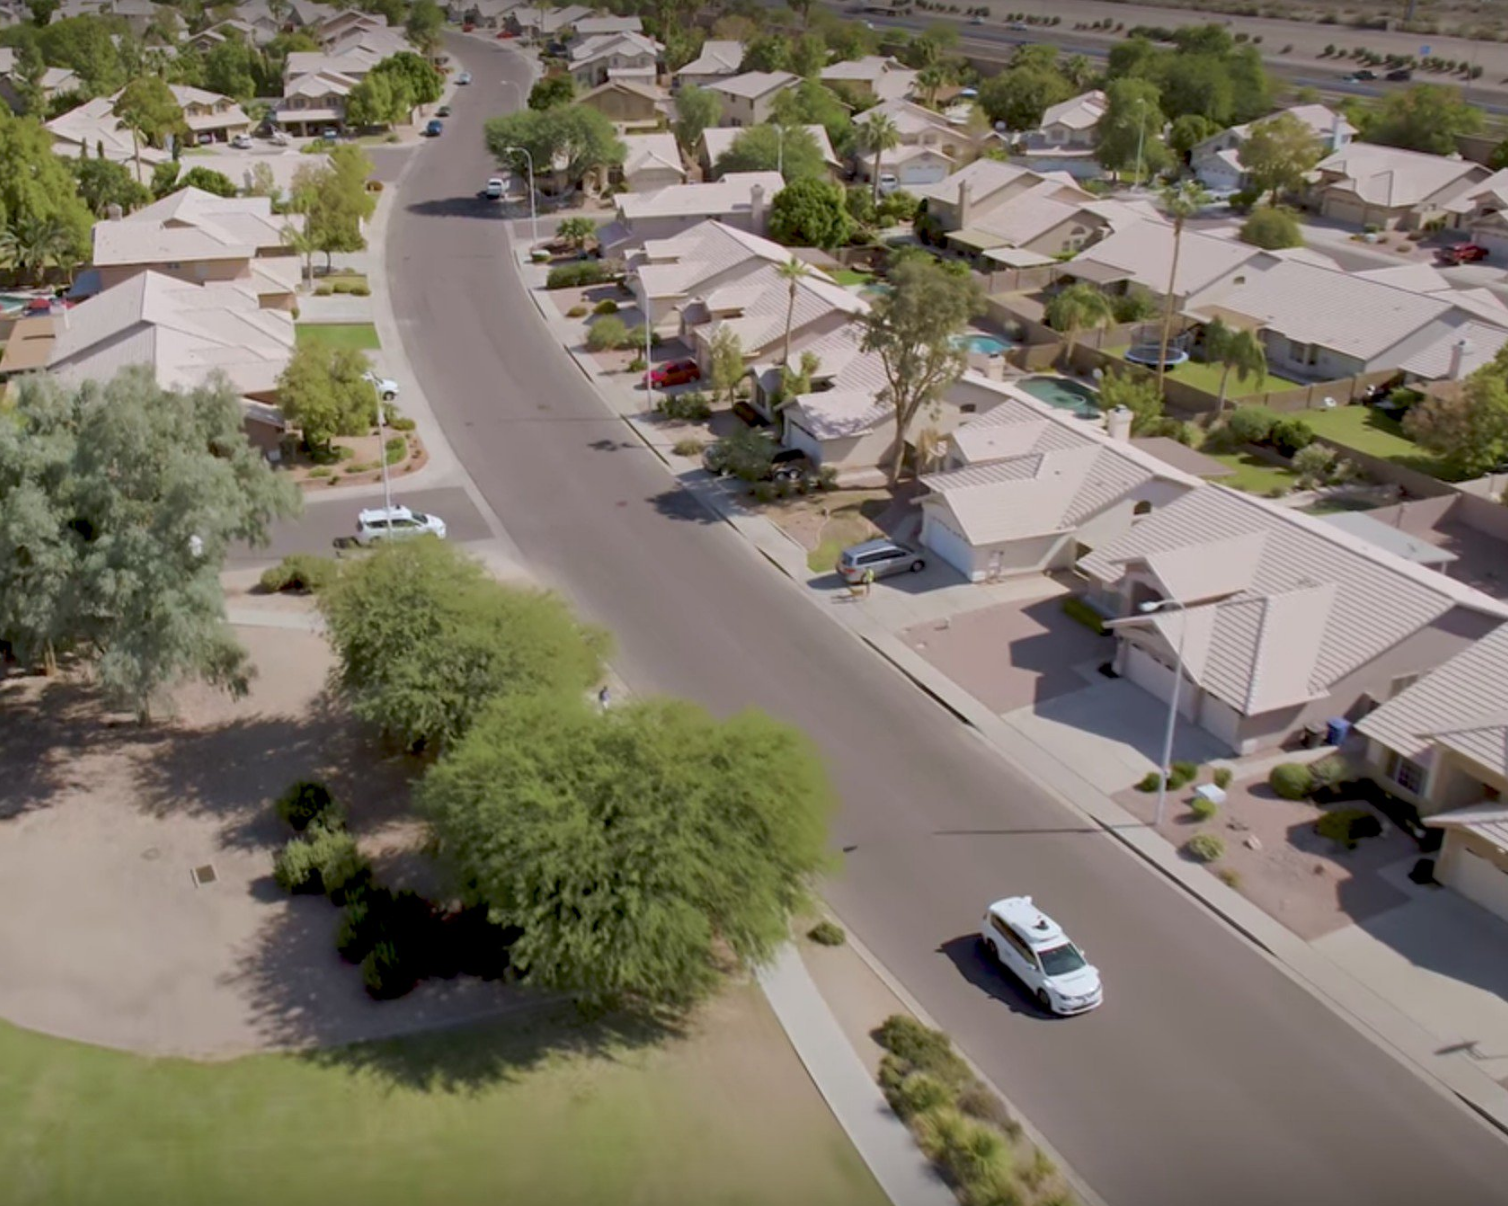 "This is a screenshot from Waymo's <a href=""https://www.youtube.com/watch?v=aaOB-ErYq6Y"">November 2017 video</a> announcing the start of fully driverless testing. It shows fully driverless Waymo cars driving on residential streets that are almost empty."